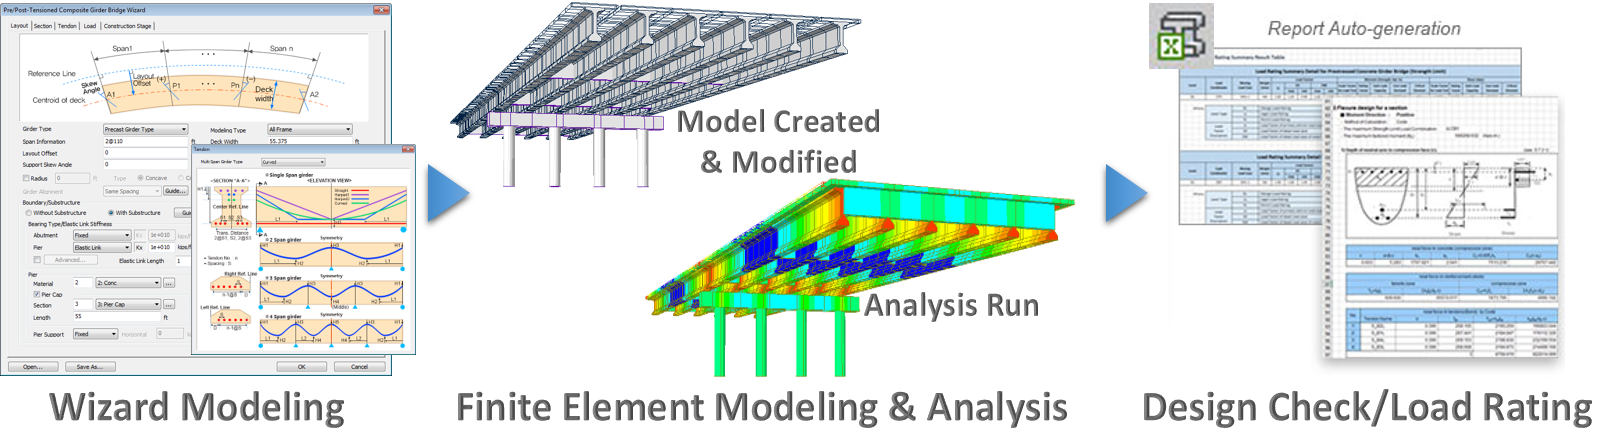 Wizard Modeling, Finite Element Modeling & Analysis, Design Check/Load Rating